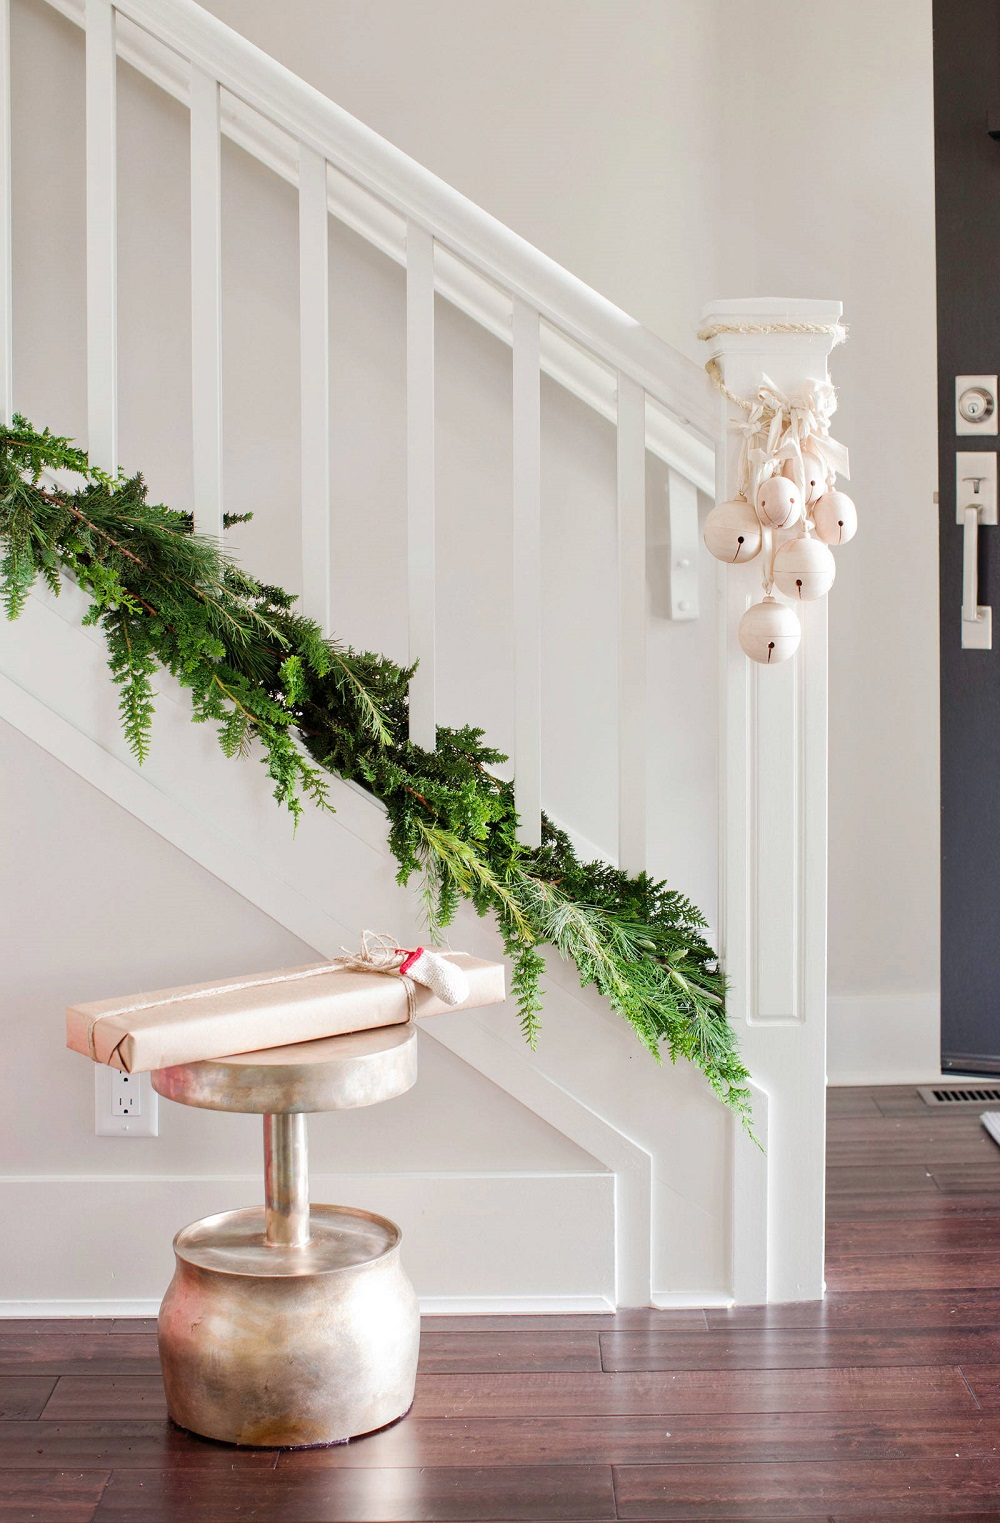 t3-1 Great ideas for decorating Christmas stairs that you should definitely try